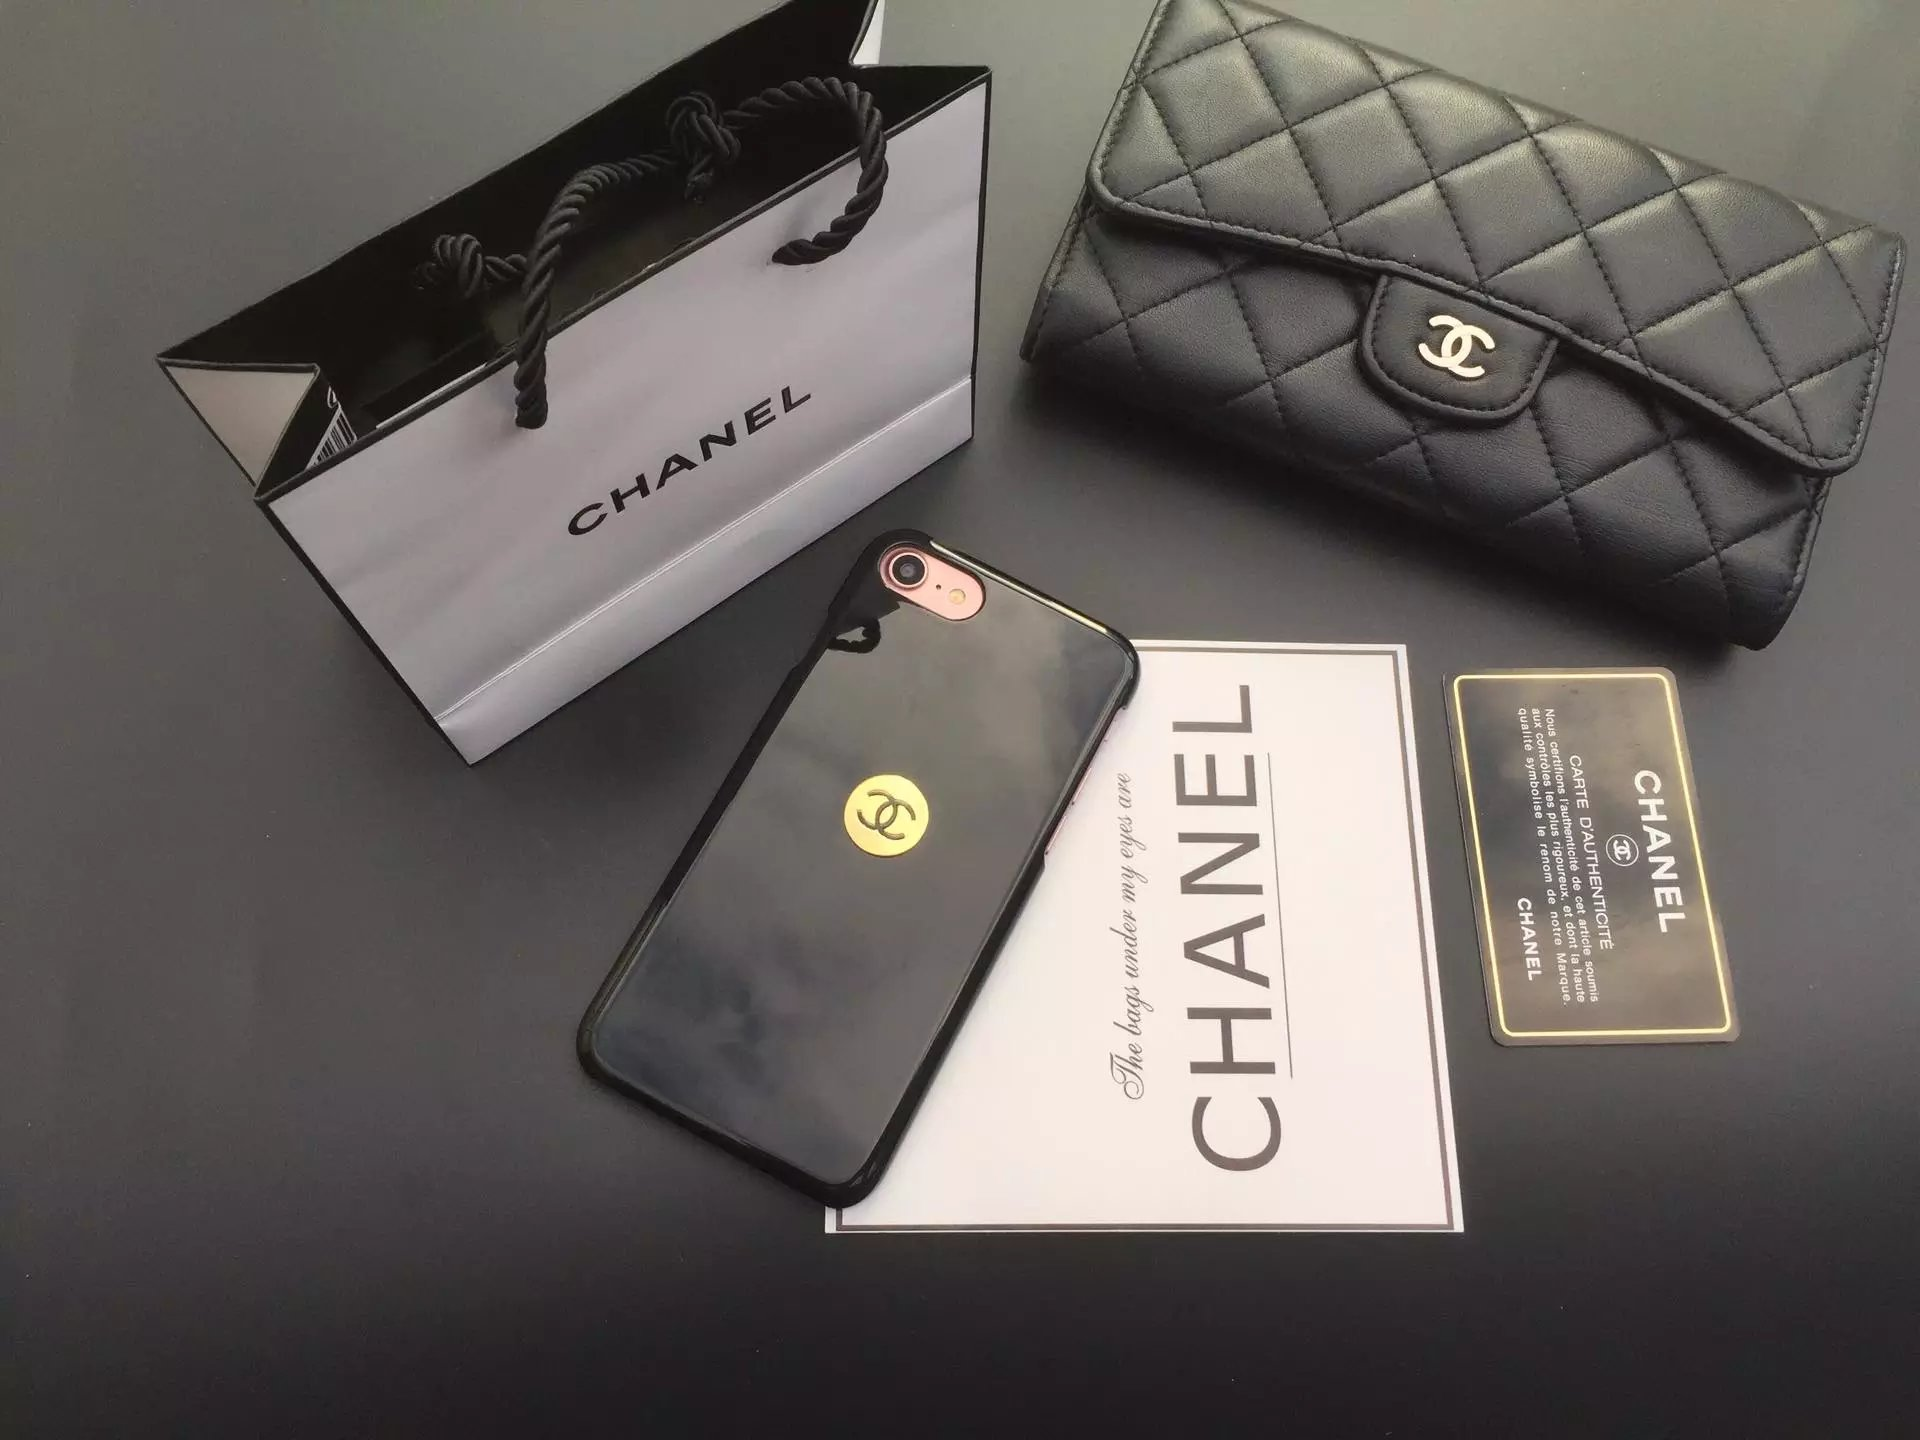 shop iphone 8 Plus cases most popular iphone 8 Plus cases Chanel iphone 8 Plus case custom phone cases iPhone 8 Plus cover phone case cover iphone 8 Plus best case for iPhone 8 Plus i 6 phone cases designer iPhone 8 Plus cases